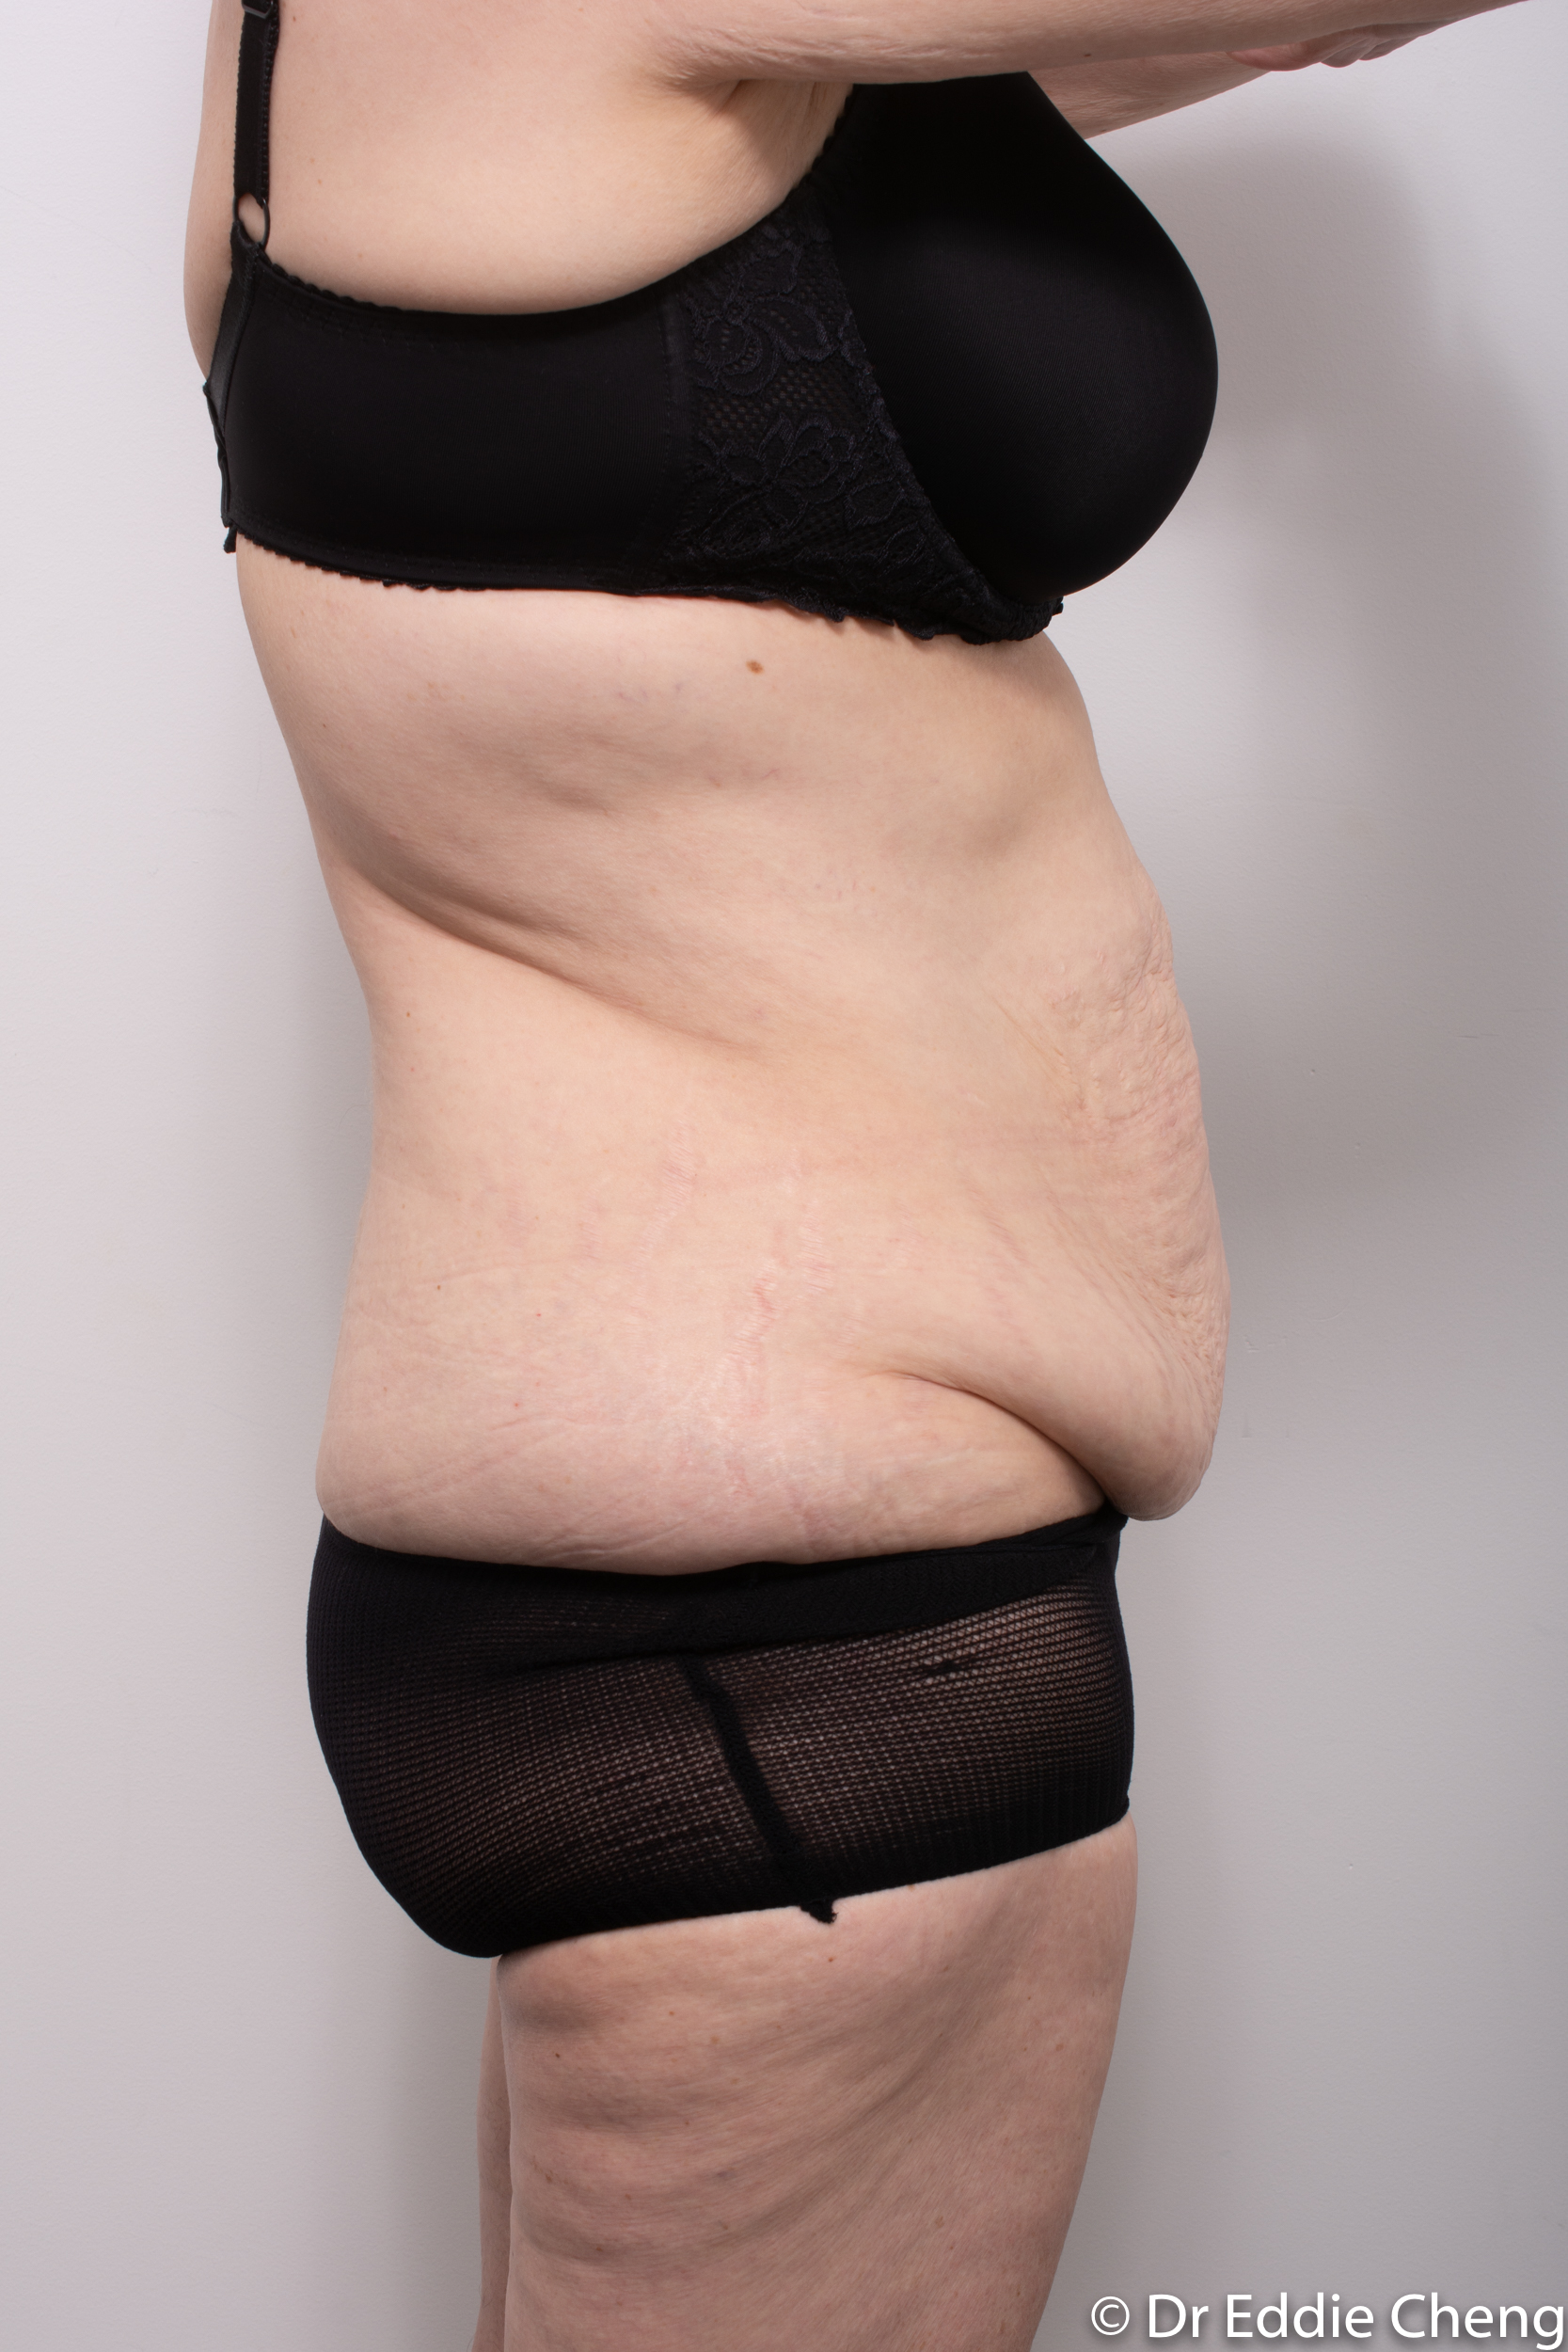 Body lift circumferential dr eddie cheng brisbane surgeon pre and post operative images -1